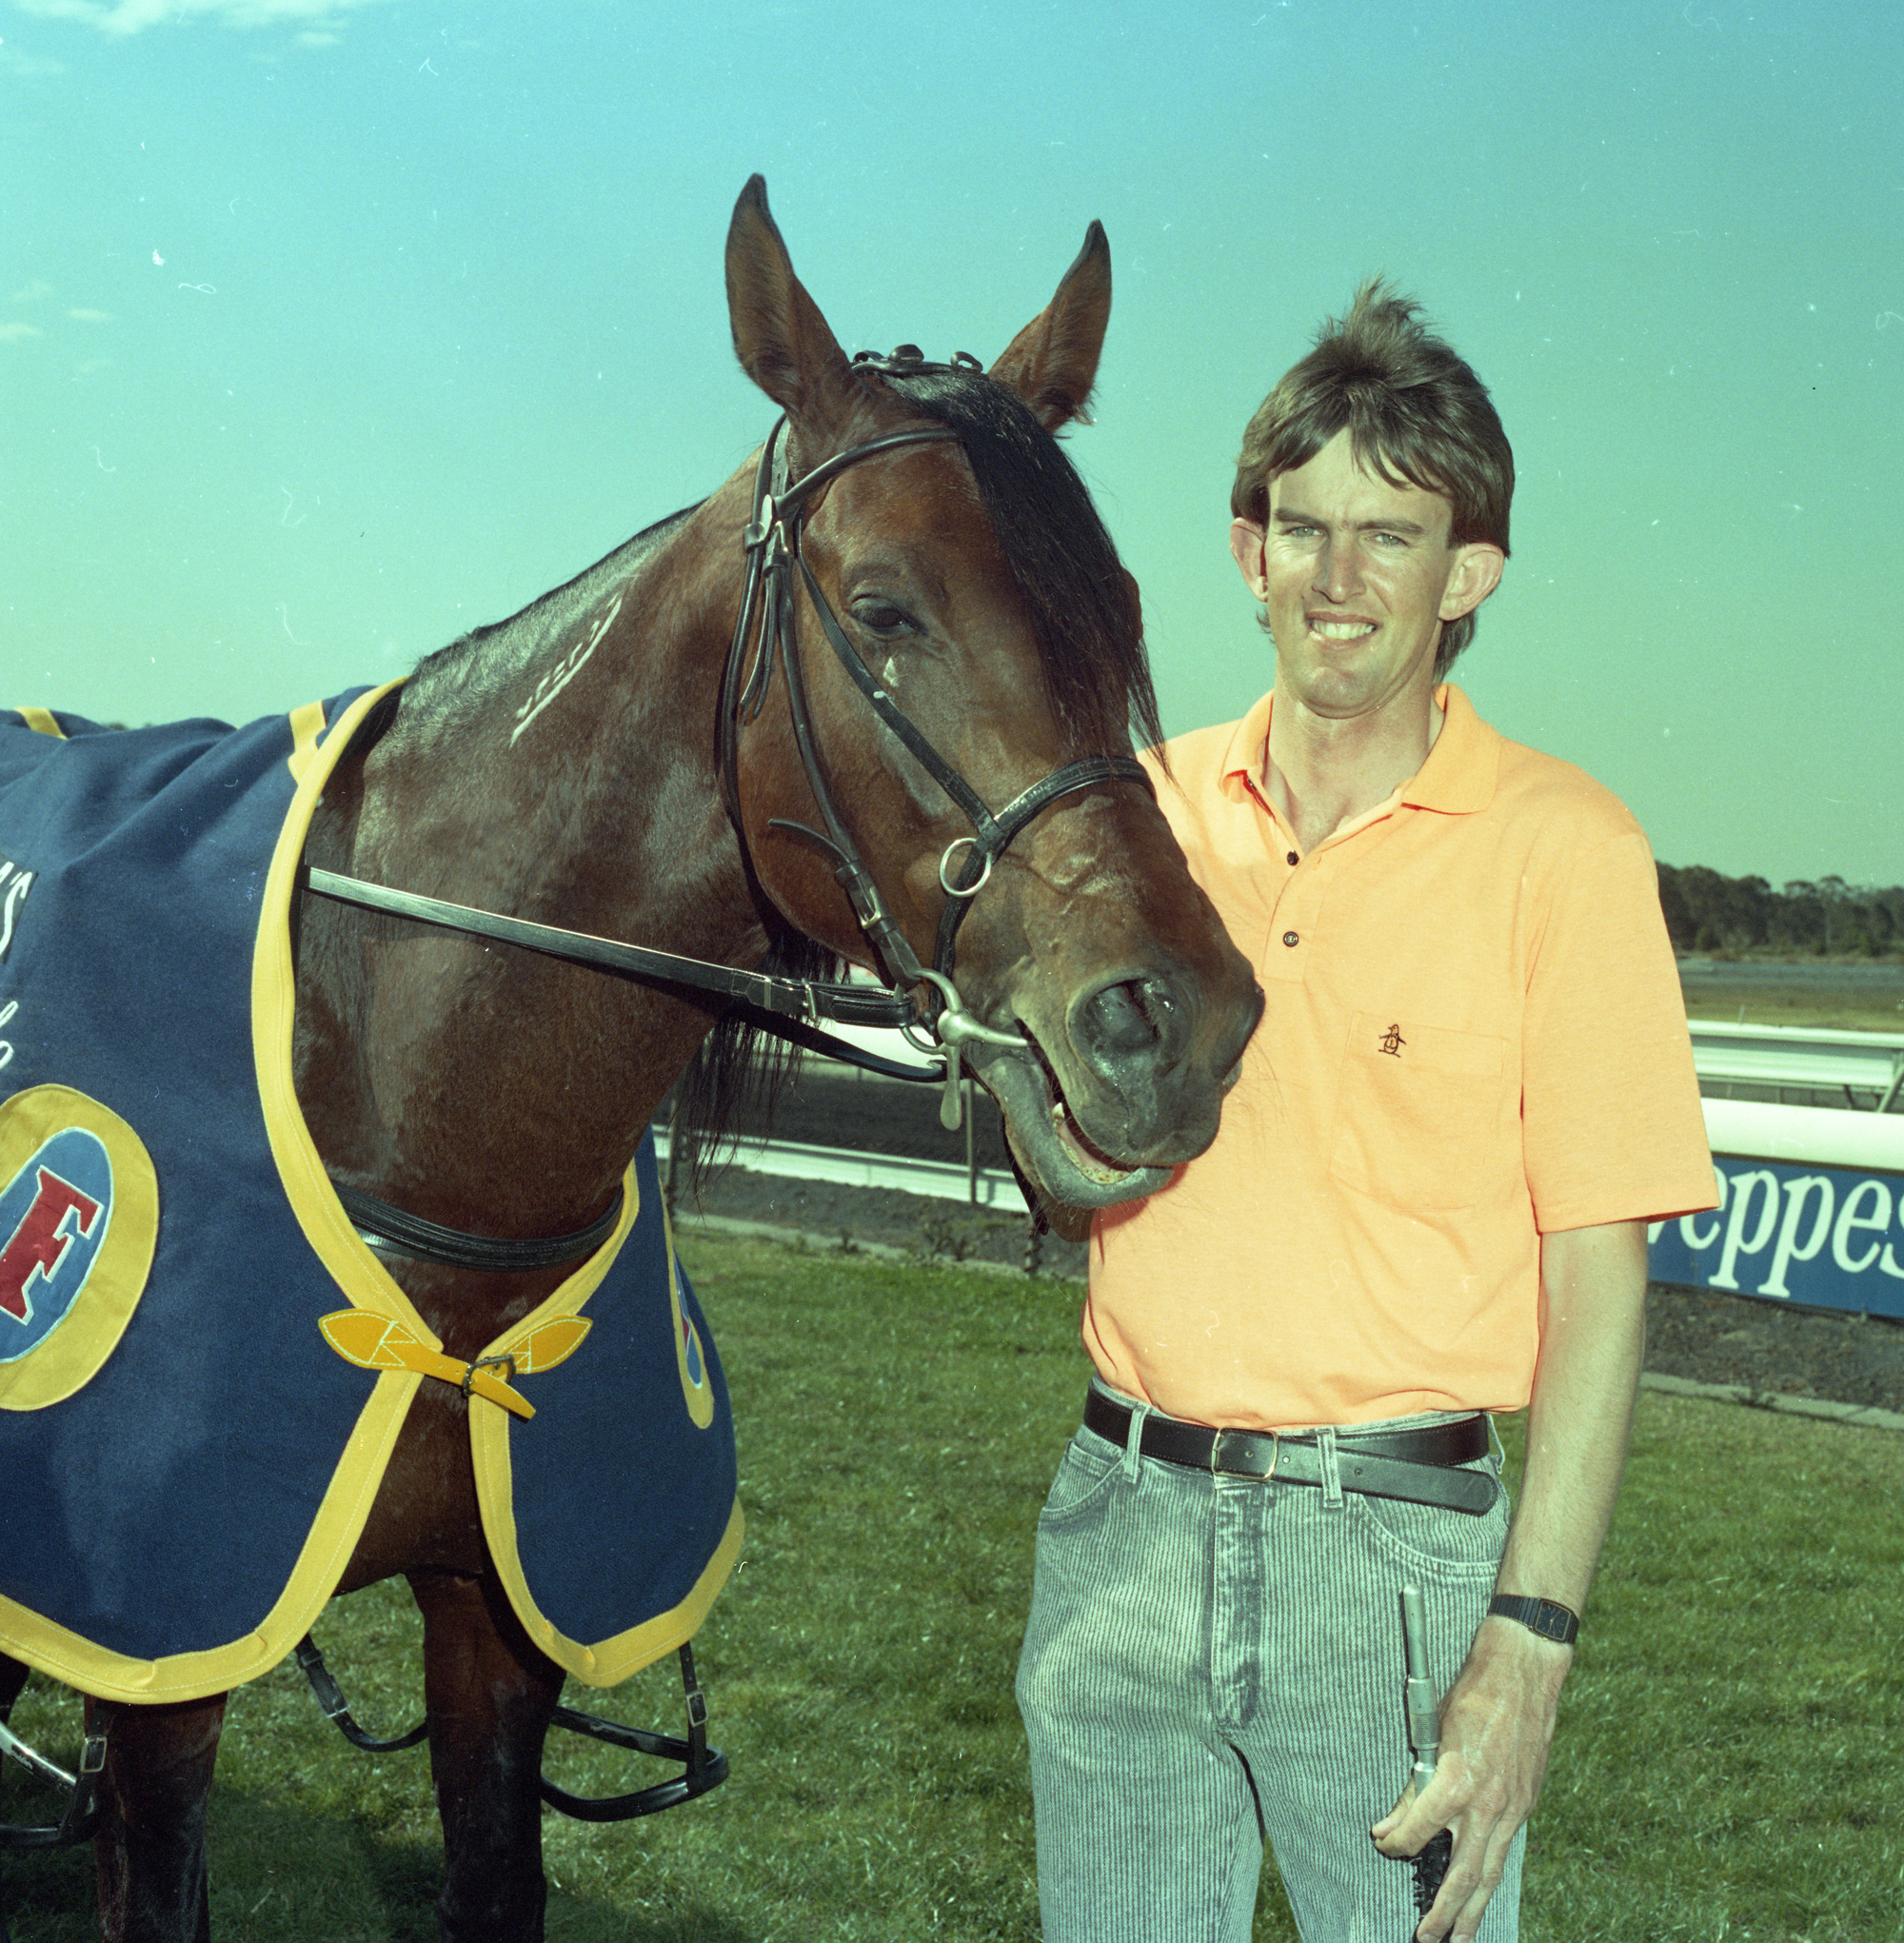 Image courtesy National Trotguide - Howard at the races 1989.